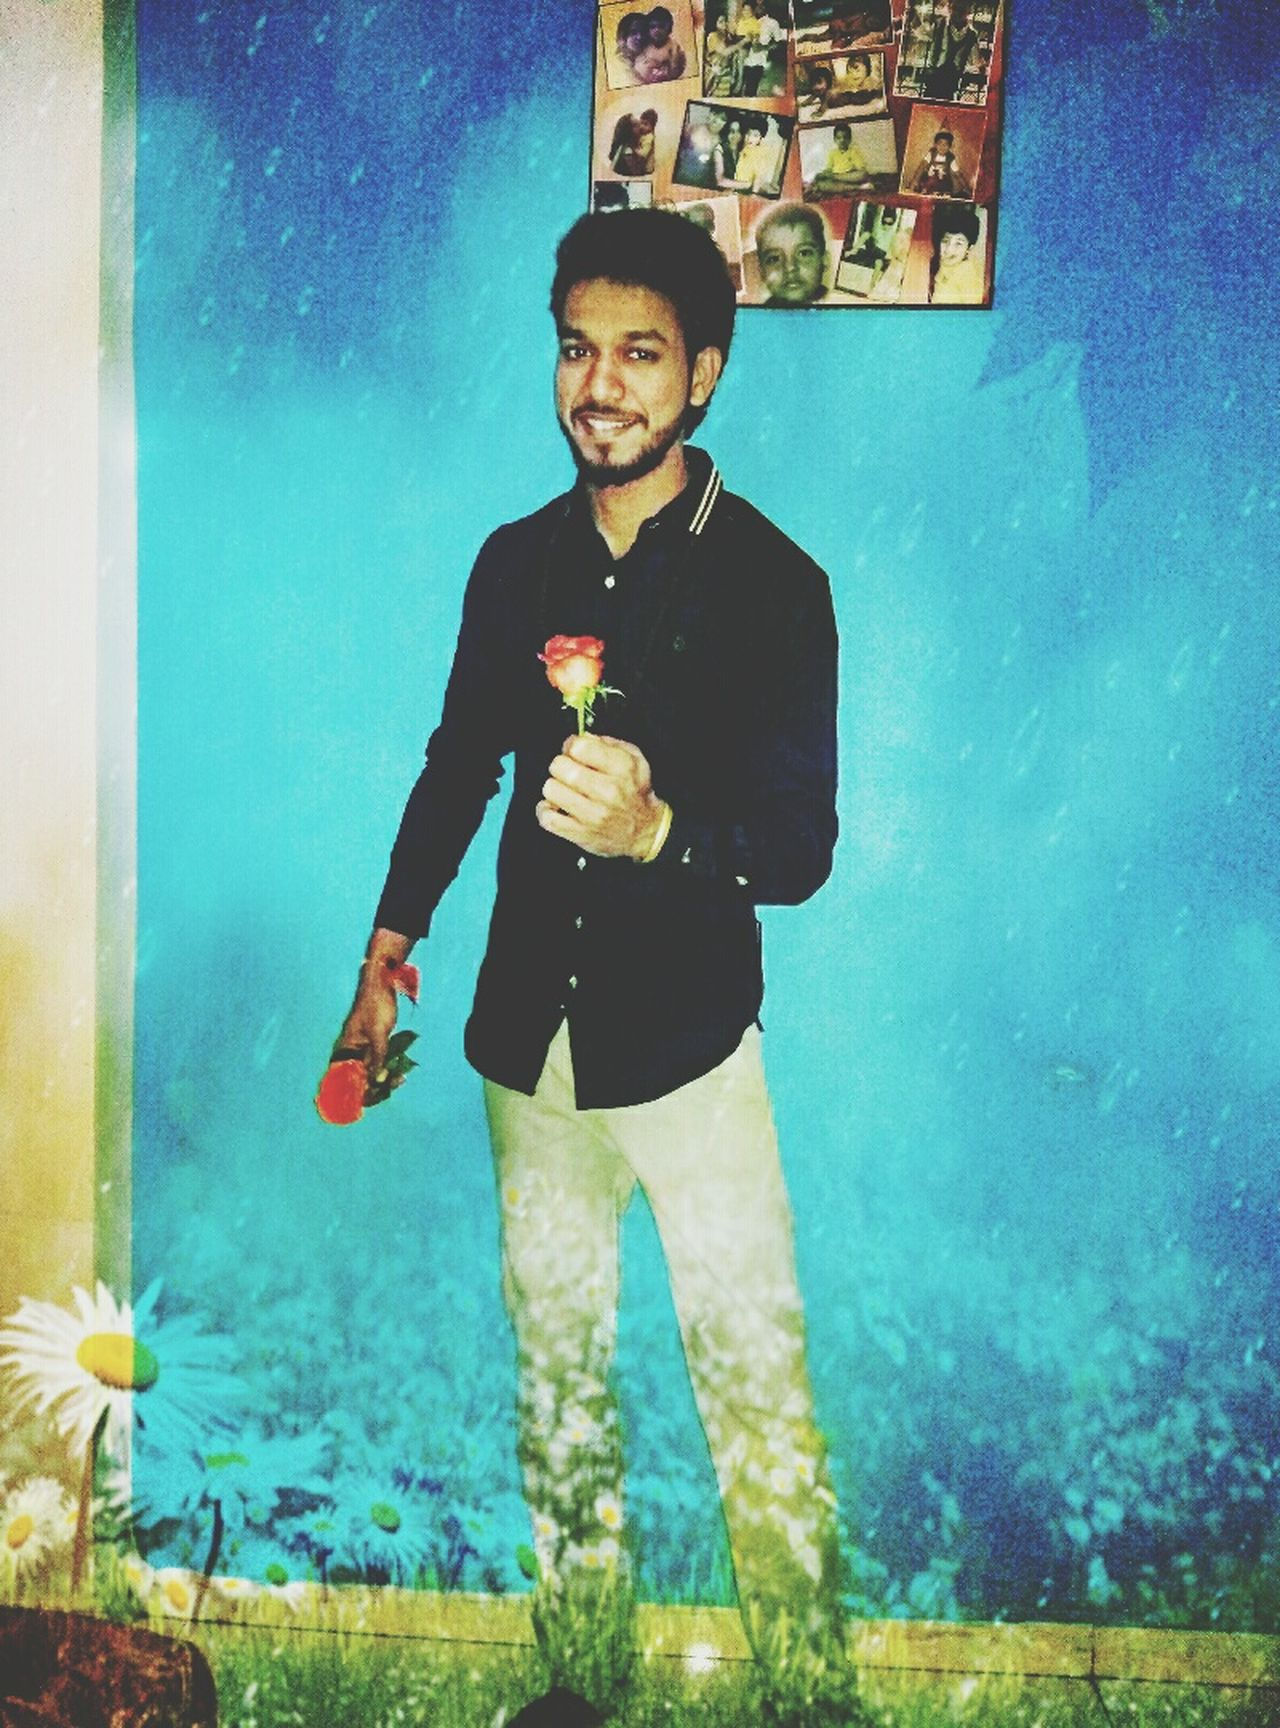 Hackerpandit Saurabh Dubey Saurabh Dubey Propose Will U Remember Me How I Remembered U ❤ Rosé Rose Day Valentine's Day  Happy Roseday Happy Valentines Day ❤